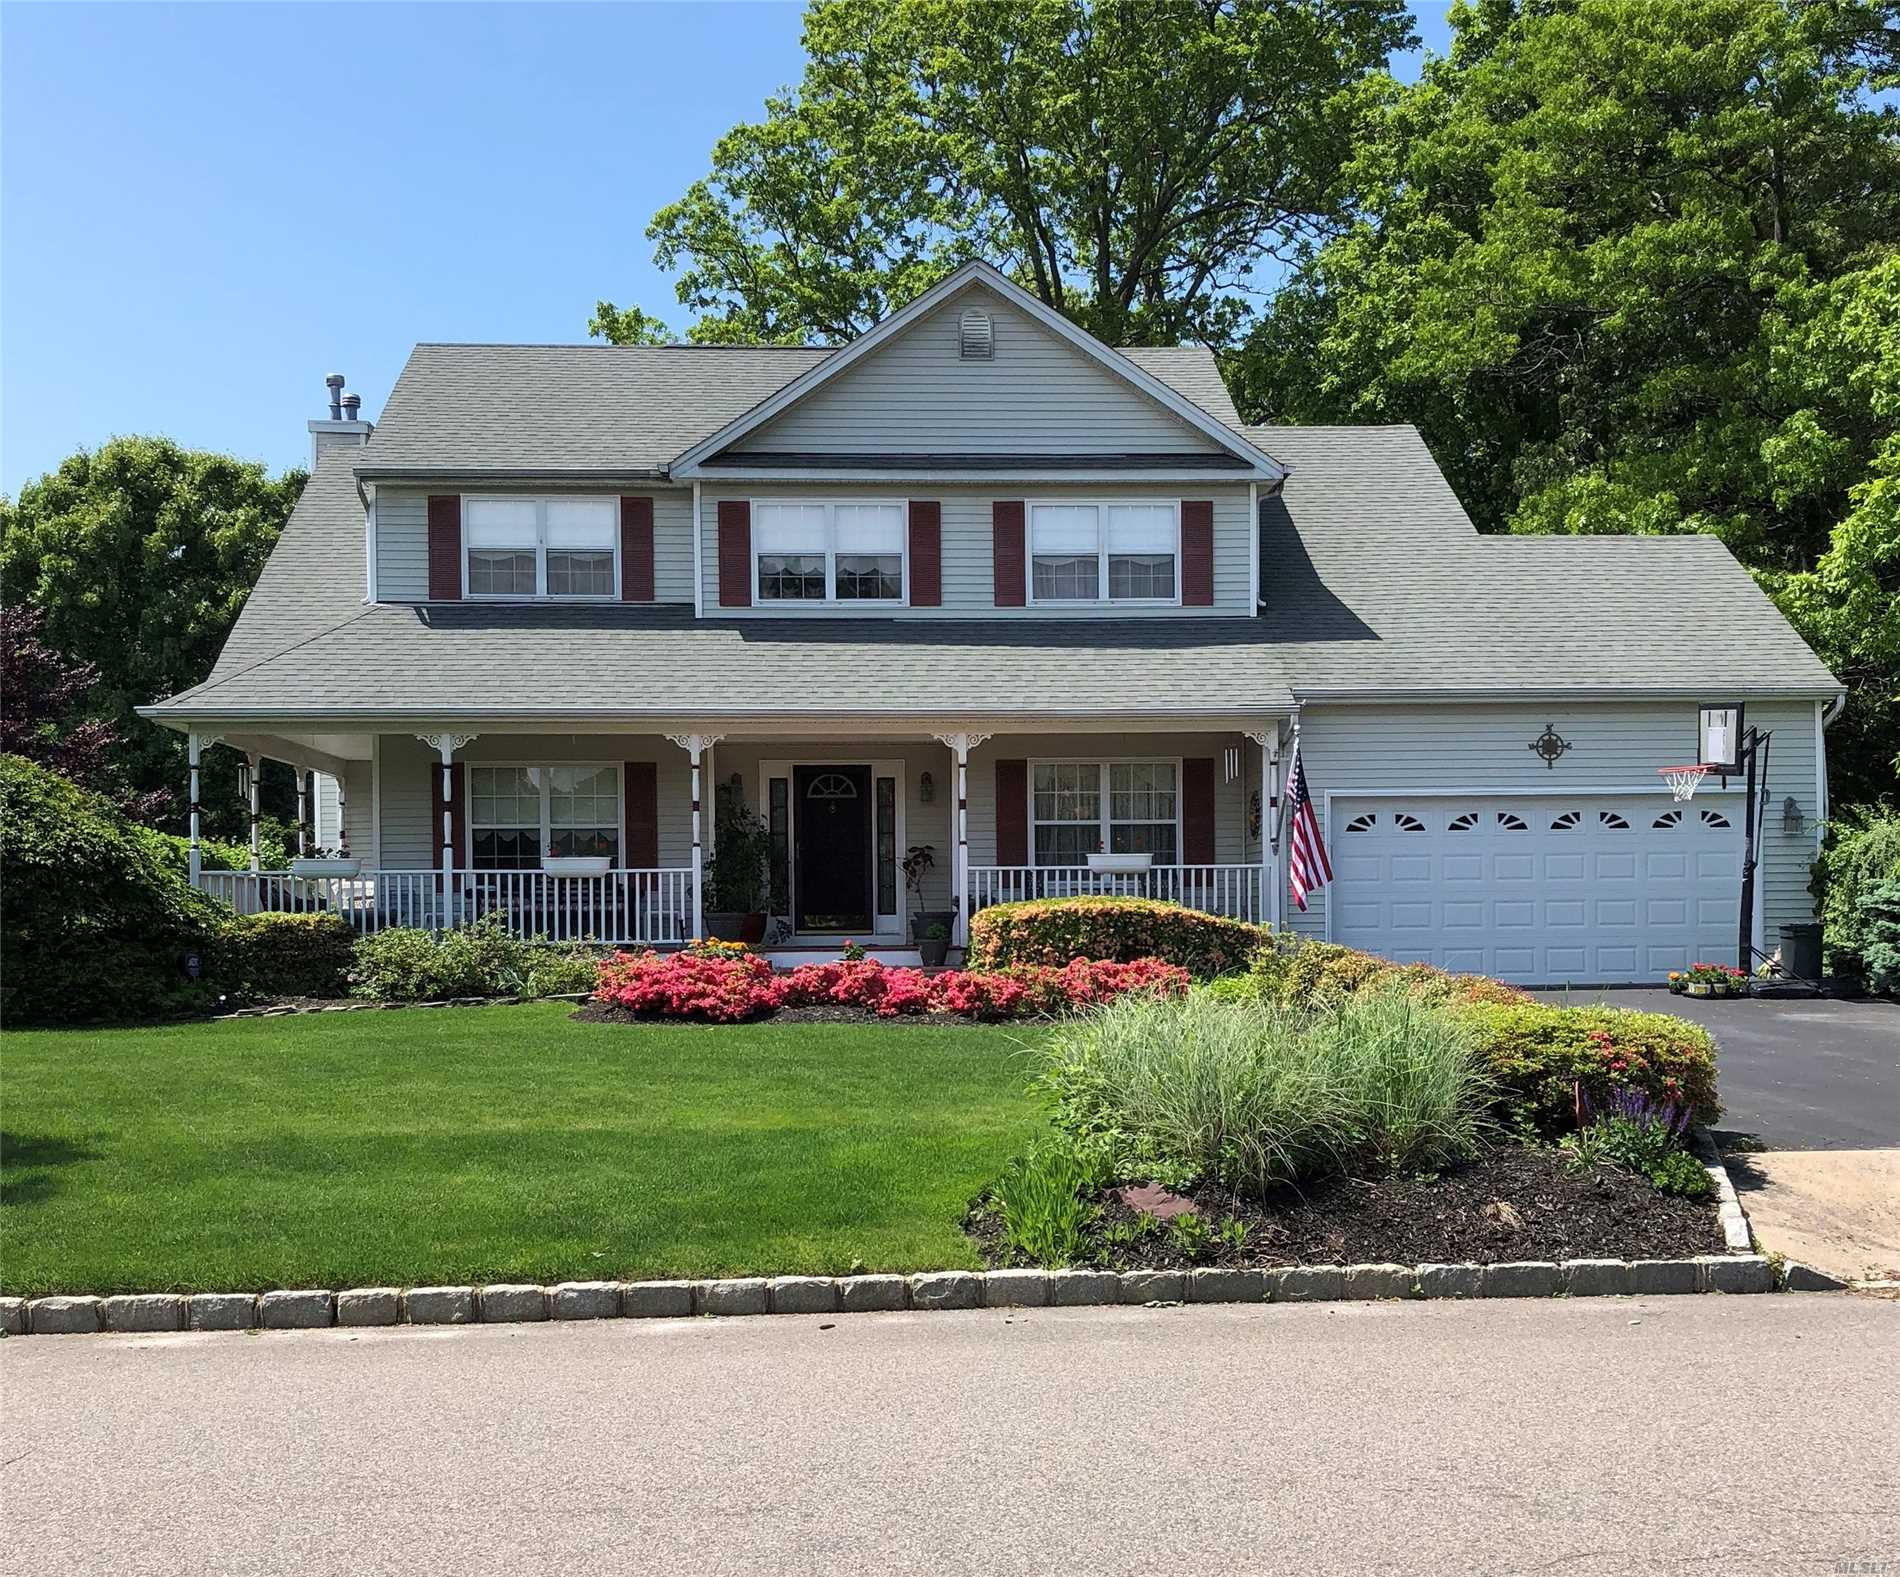 Photo of home for sale at 42 James Hawkins Rd, Moriches NY